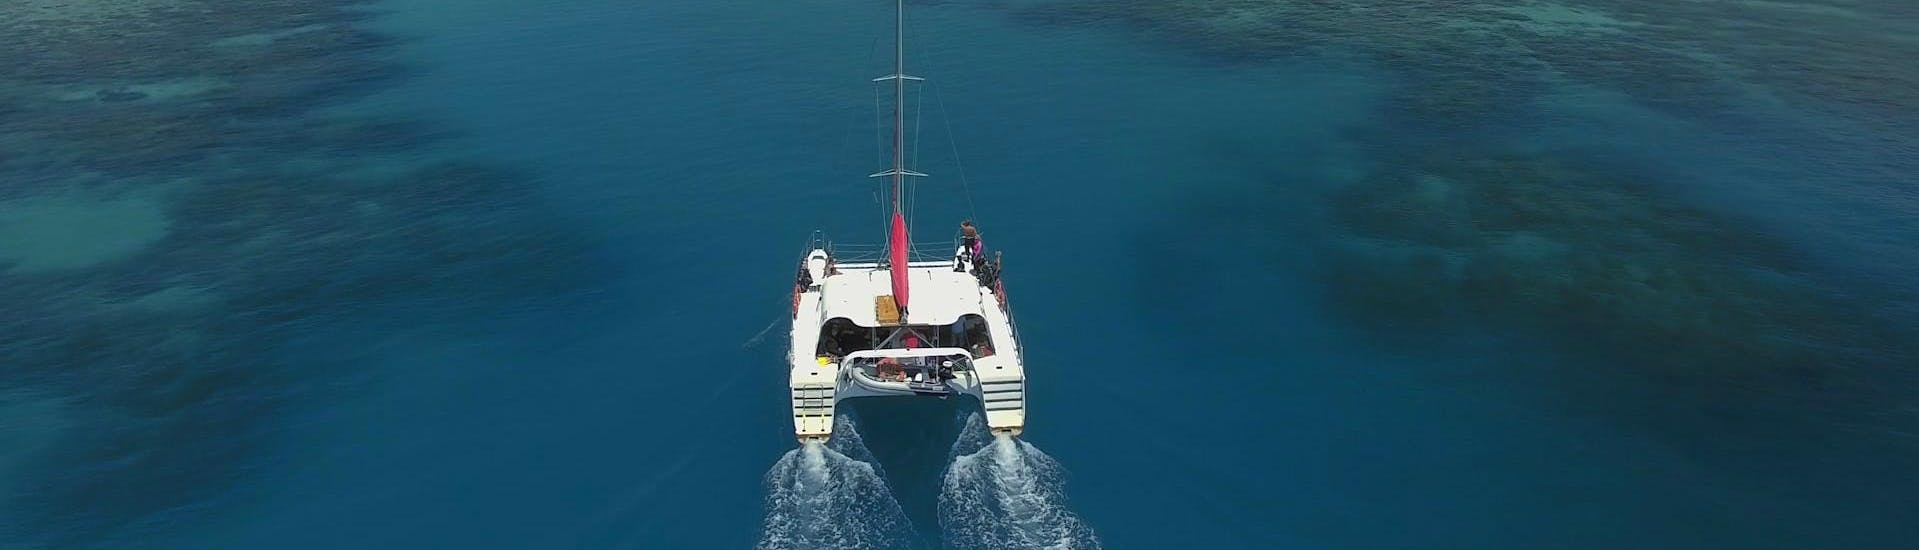 The catamaran Reef Daytripper Cairns is heading towards Upolu Reef during the Great Barrier Reef Diving Trip - Introductory Dive offer.